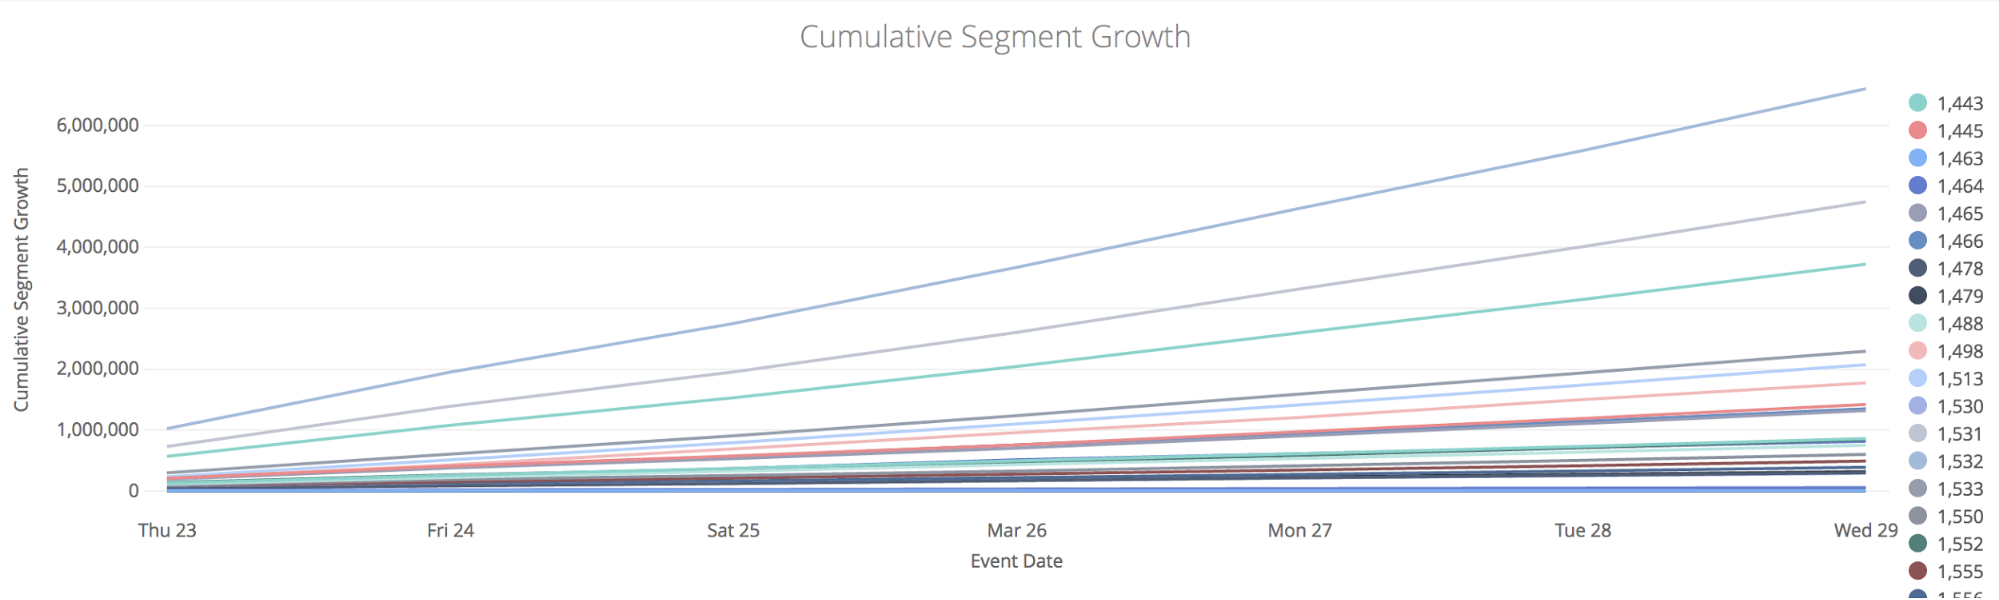 Cumulative Segment Growth